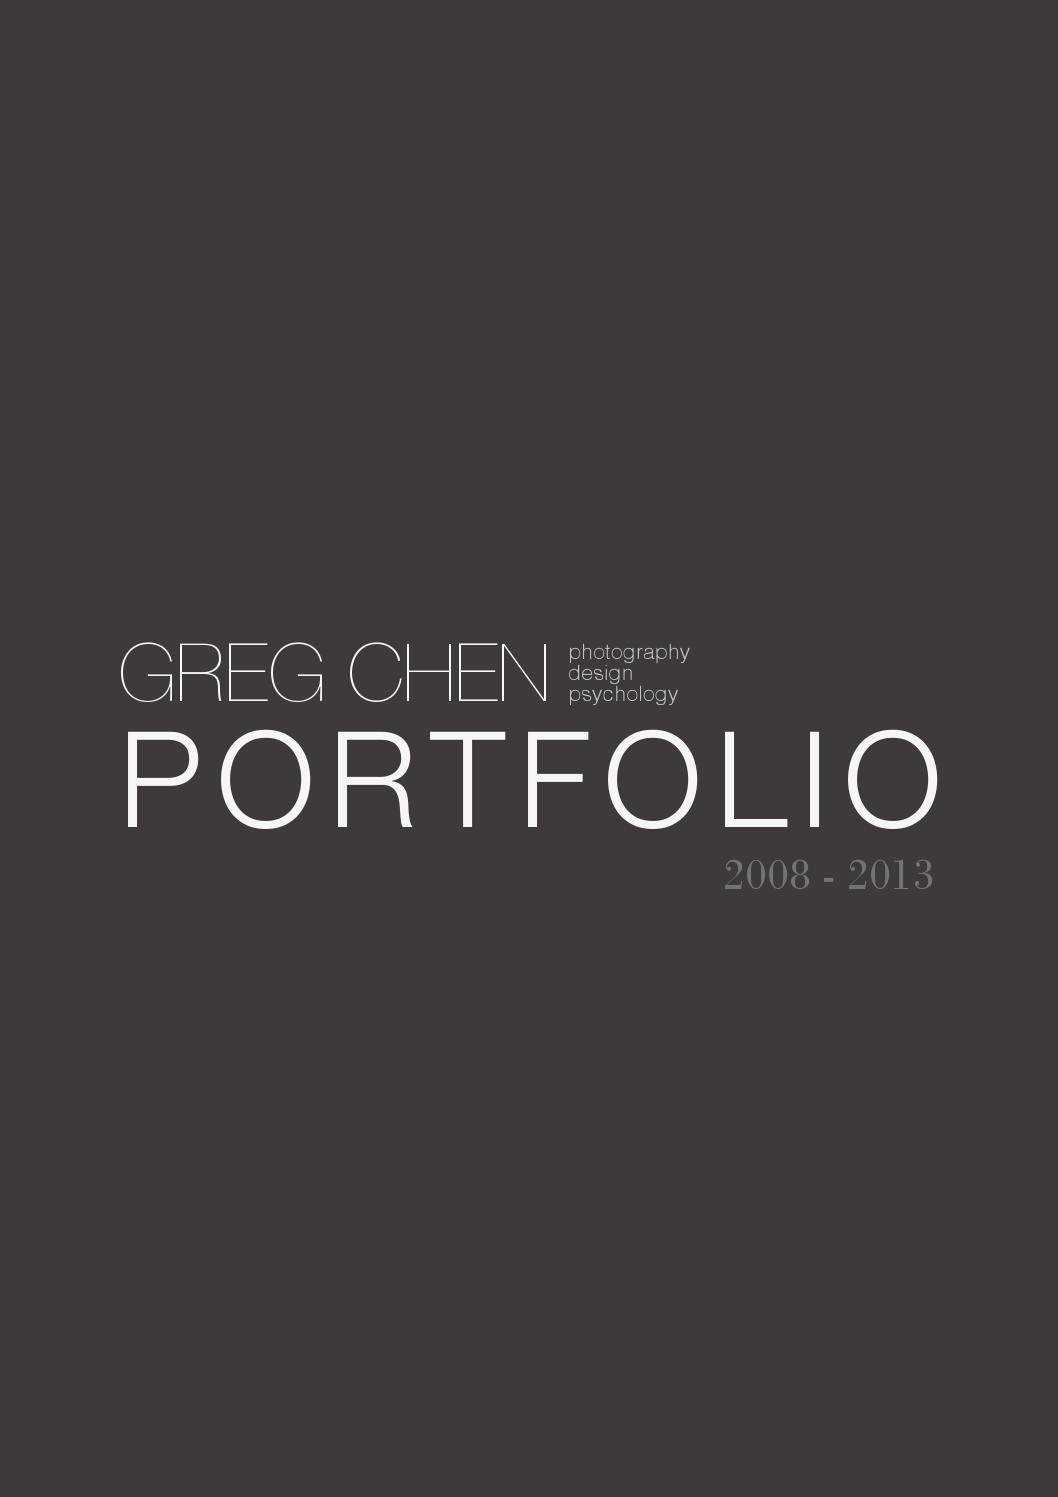 Portfolio Cover Pages Templates Lovely Greg Chen Design Portfolio 2013 by Greg Chen issuu